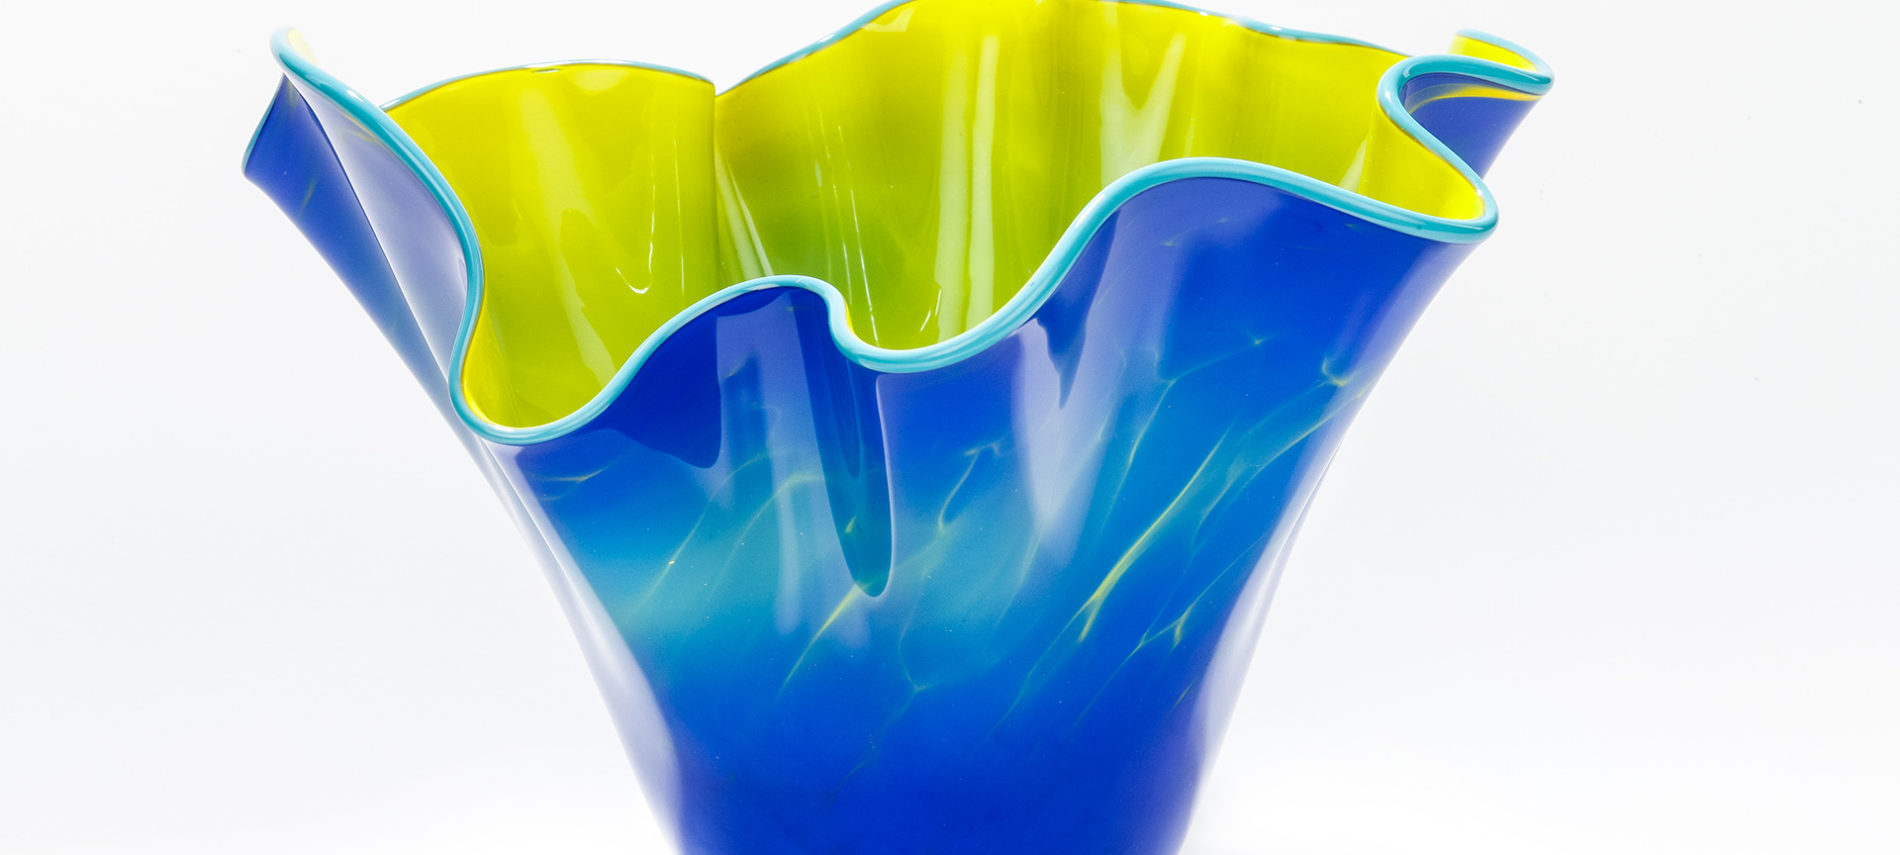 Fluted blue and yellow glass vase on a white backgrounds